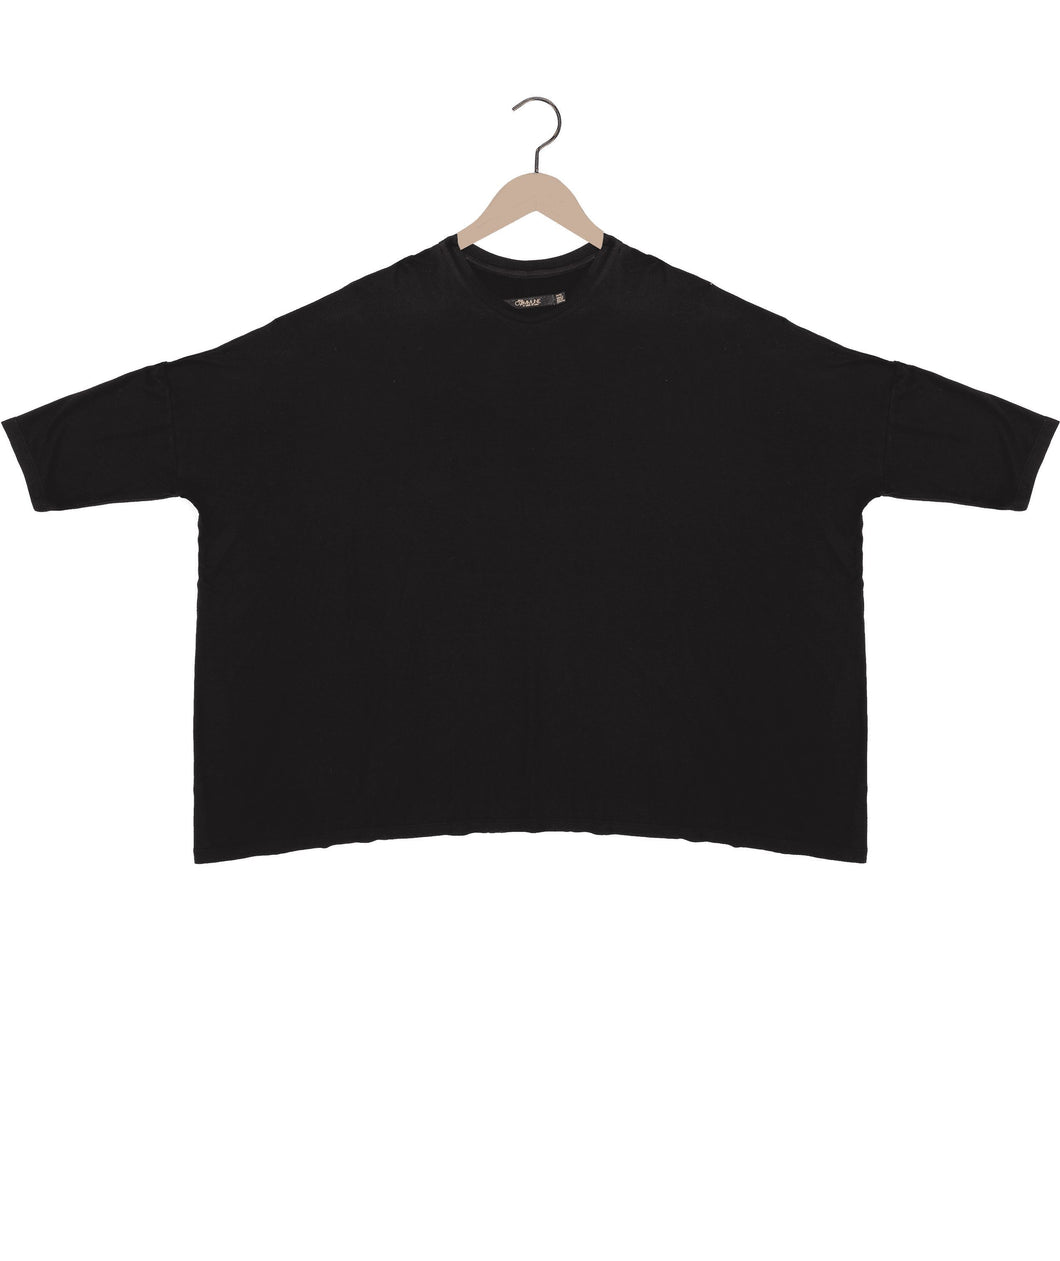 Box modal t-shirt in black Top DE LA COMMUNE